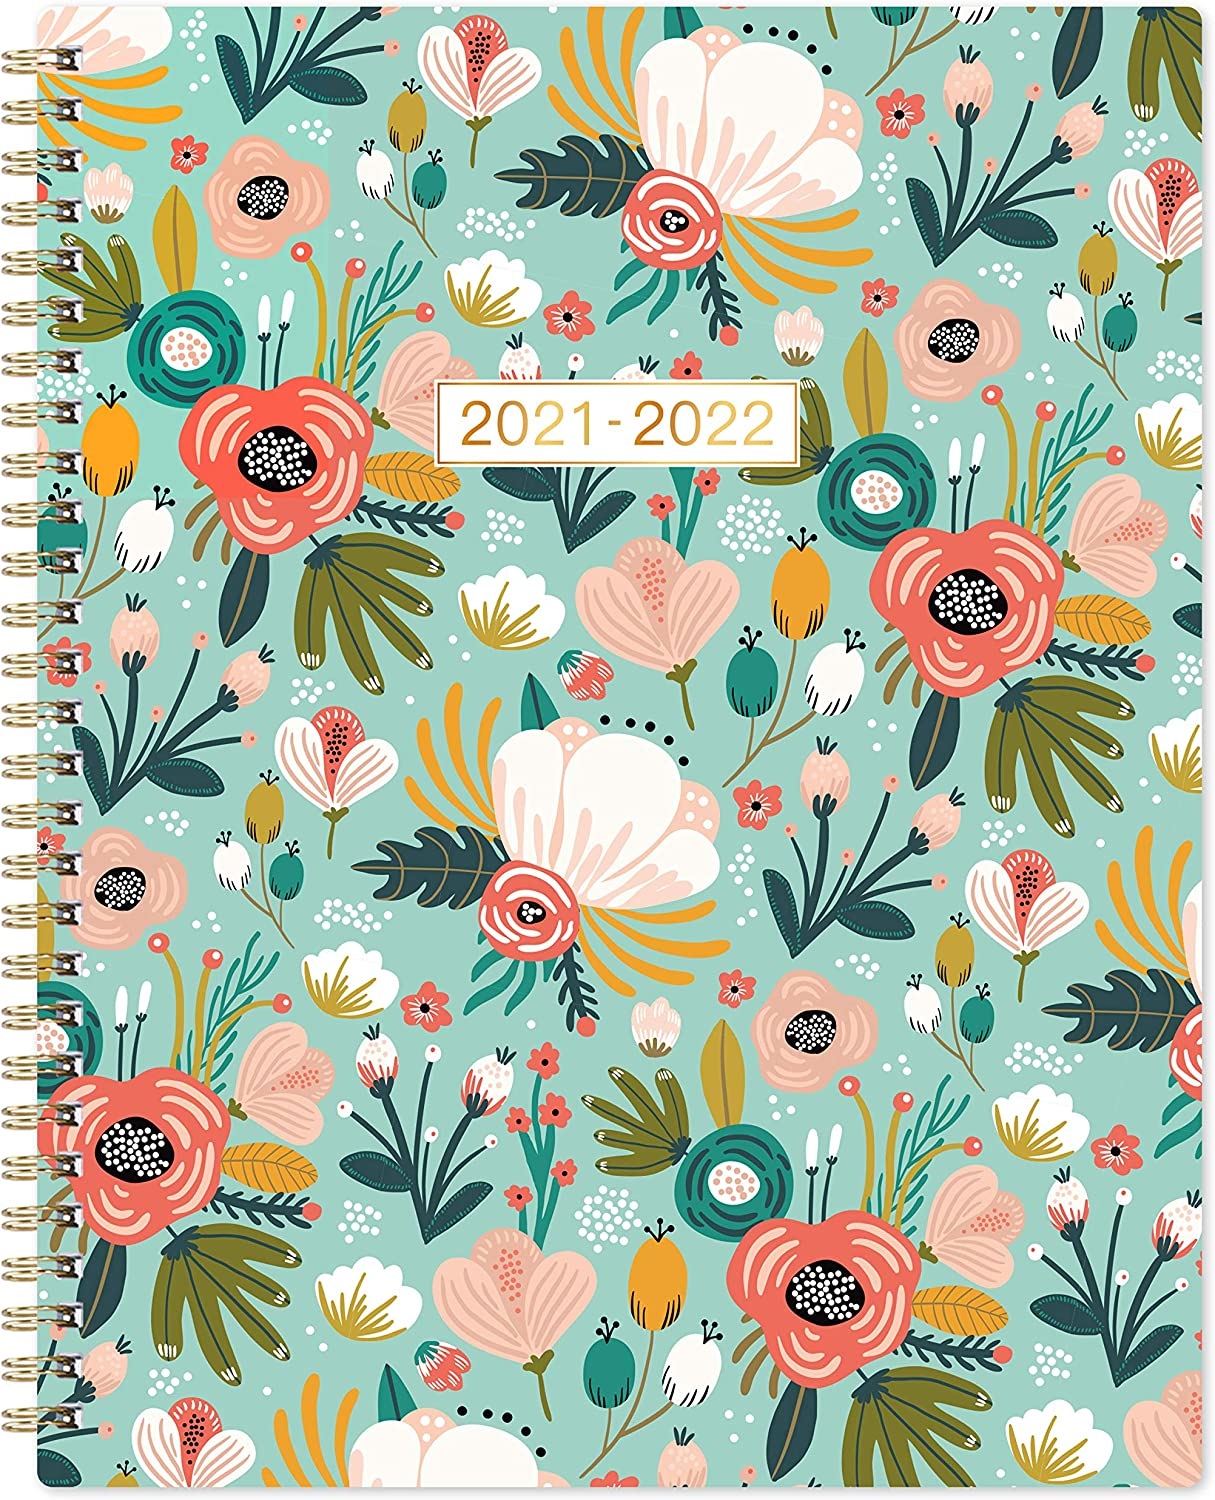 Online limited product 2021-2022 Choice Planner - Academic 202 Weekly Monthly